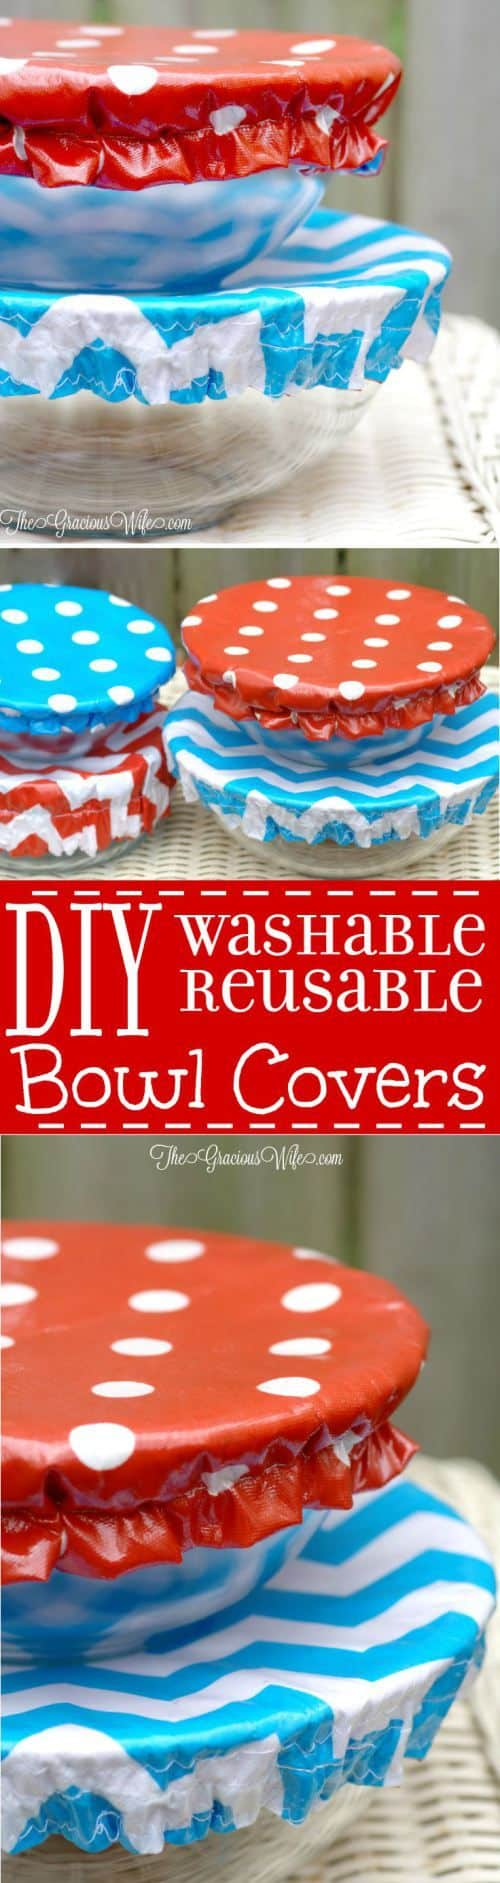 Washable Reusable Bowl Covers